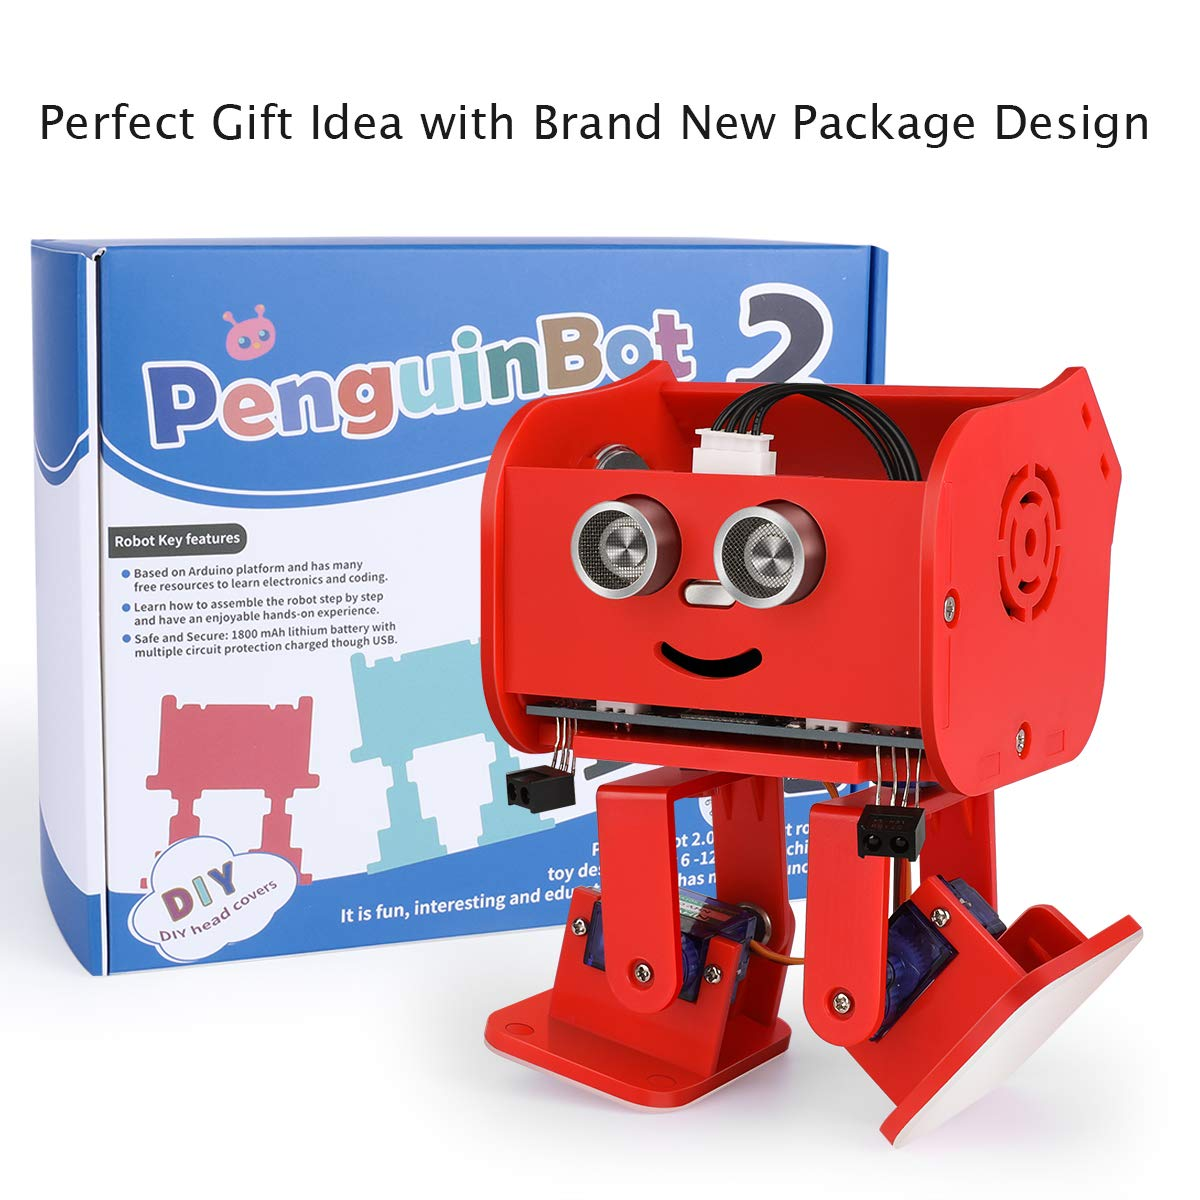 ELEGOO Penguin Bot Biped Robot Kit for Arduino Project with Assembling Tutorial,STEM Kit for Hobbyists, STEM Toys for Kids and Adults, Red Version by ELEGOO (Image #5)